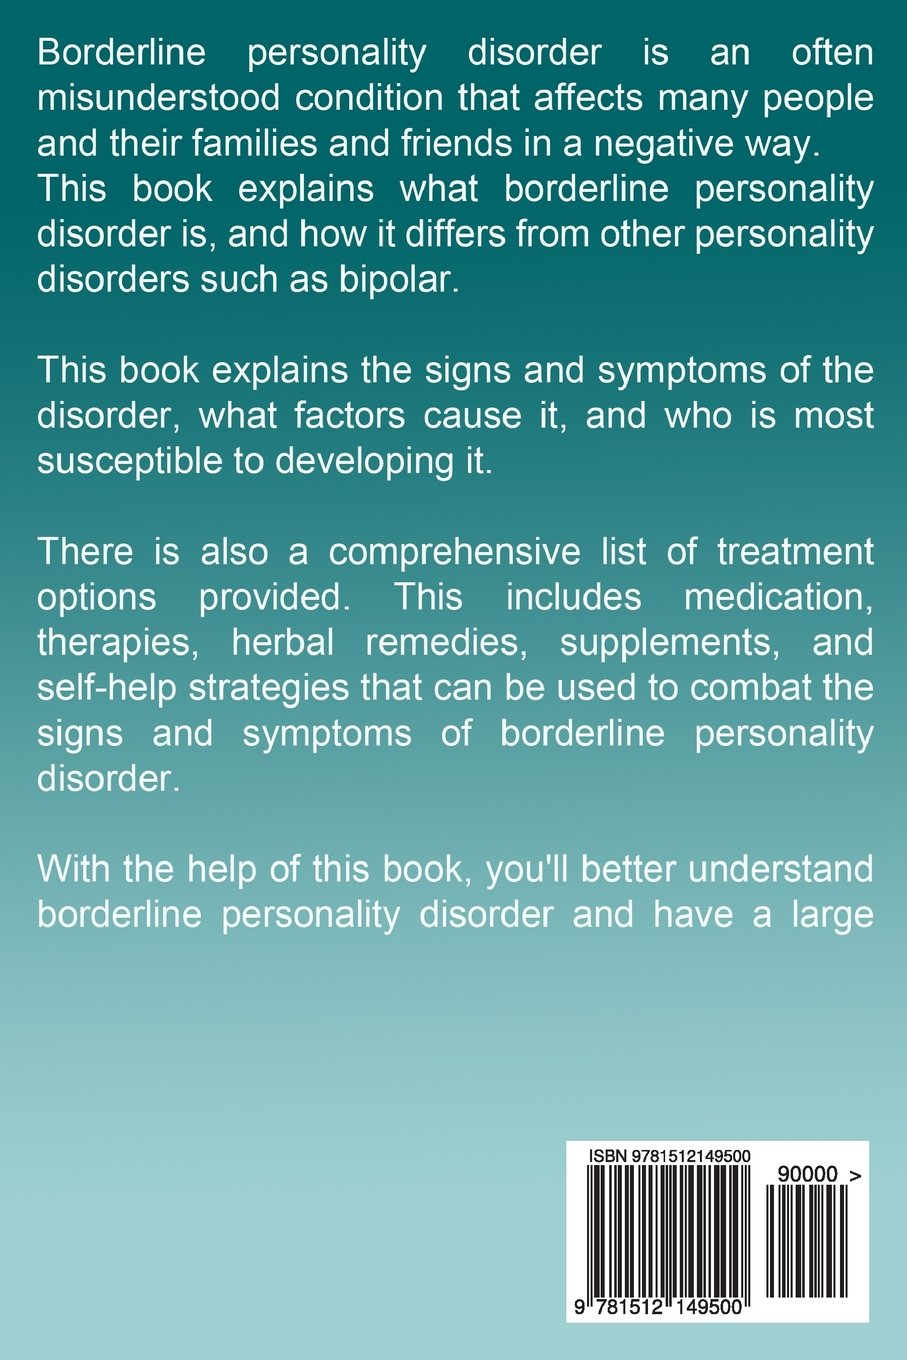 What Is Borderline Personality Disorder >> Borderline Personality Disorder A Complete Guide To The Signs